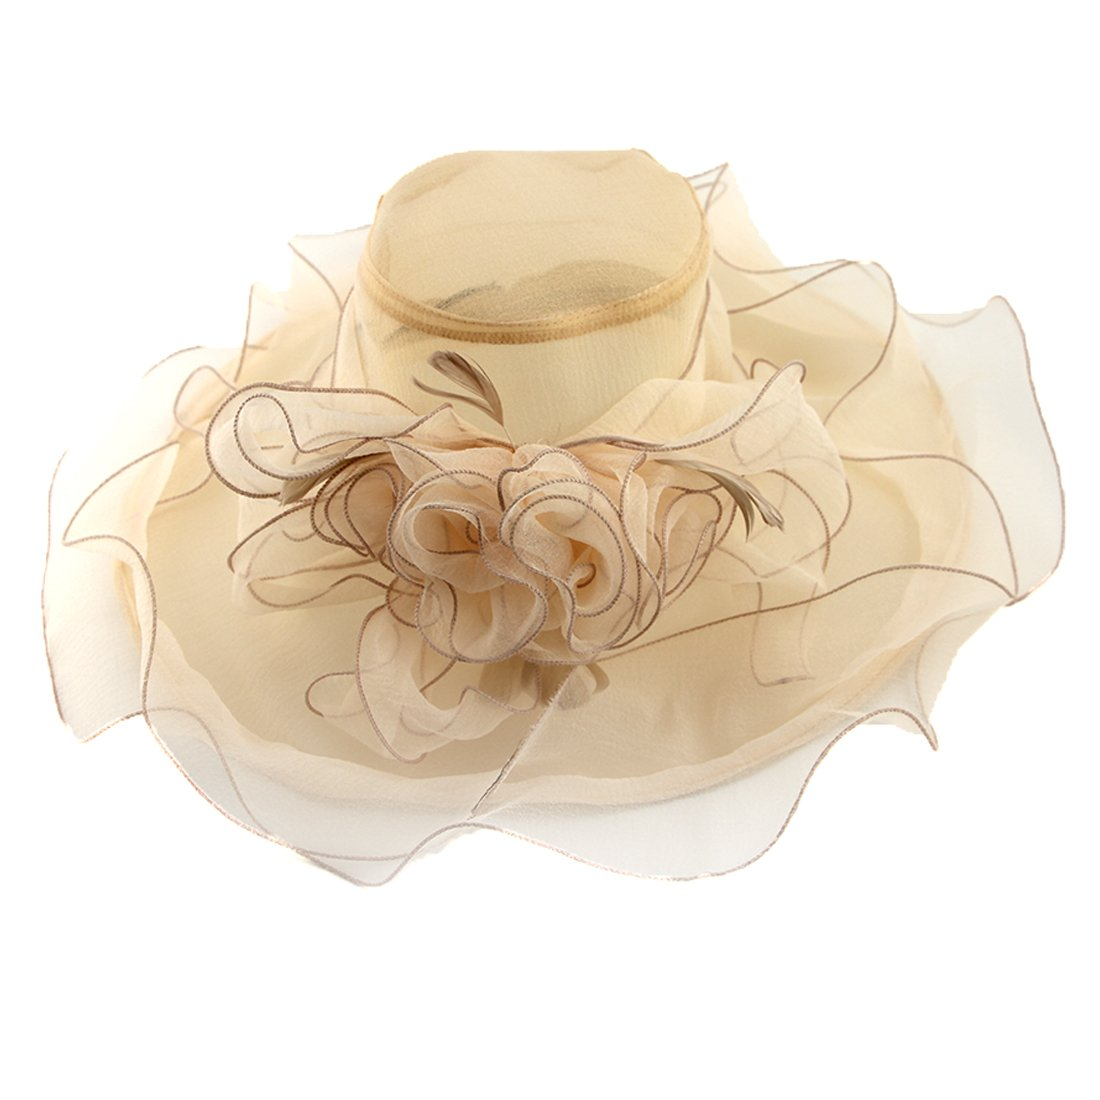 e29629d29506f Women Foldable Organza Church Derby Hat Ruffles Wide Brim Summer Bridal Cap  for Wedding Tea Party Beach (Beige-a) at Amazon Women s Clothing store